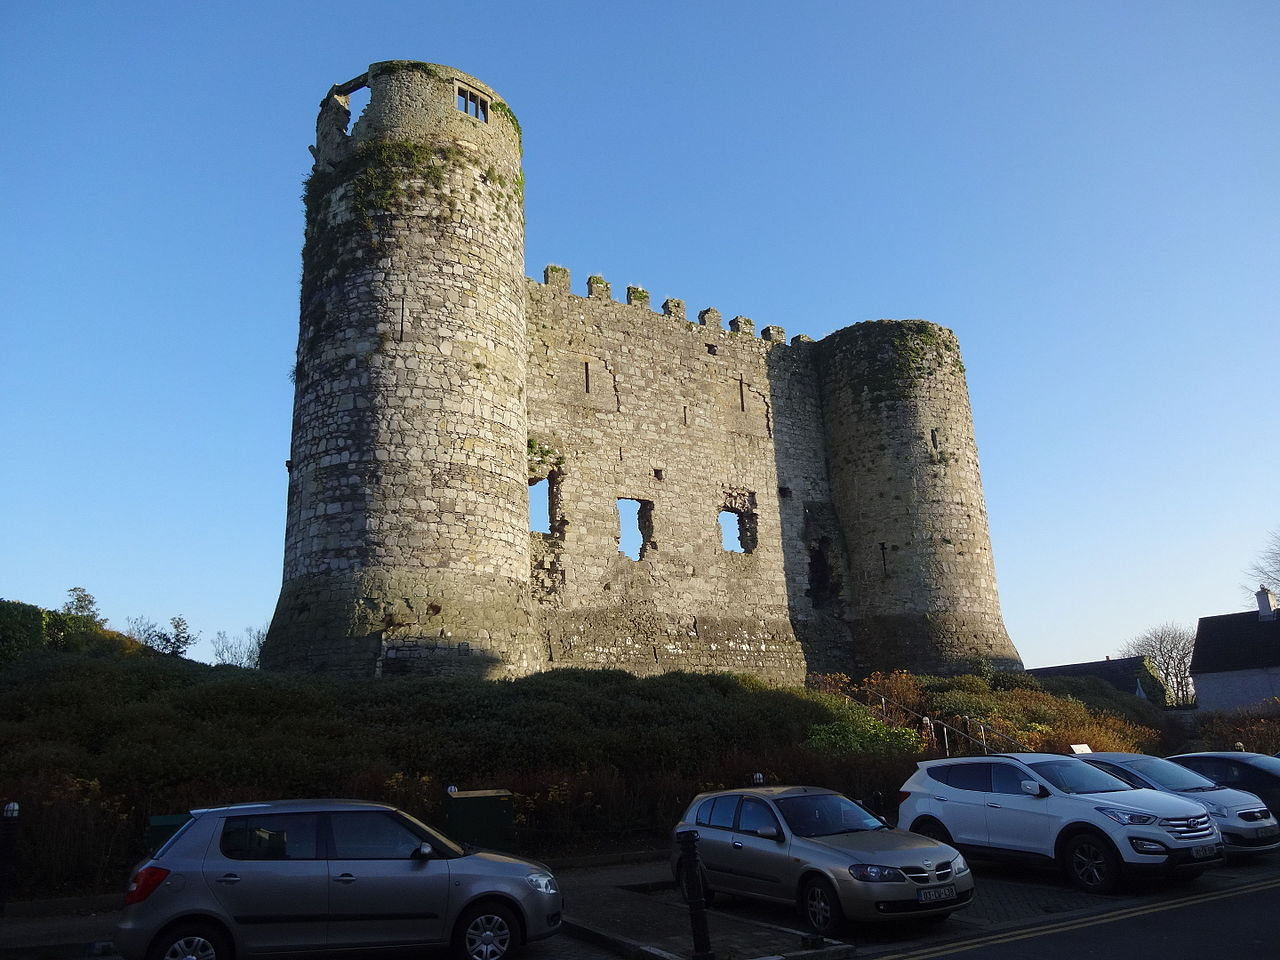 Carlow castle during the day with cars parked in front of it